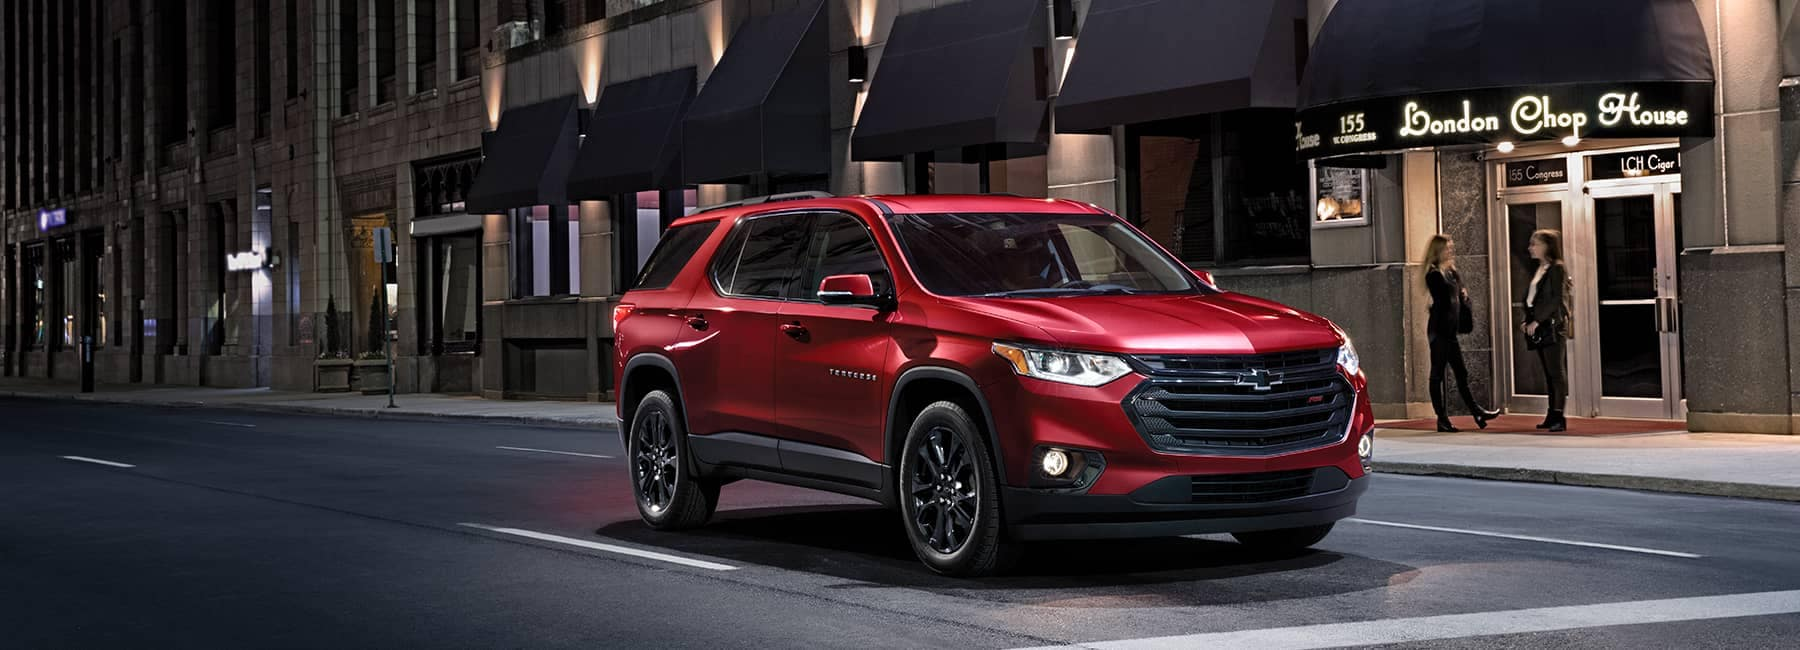 Red 2020 Chevrolet Traverse on a City St at Night